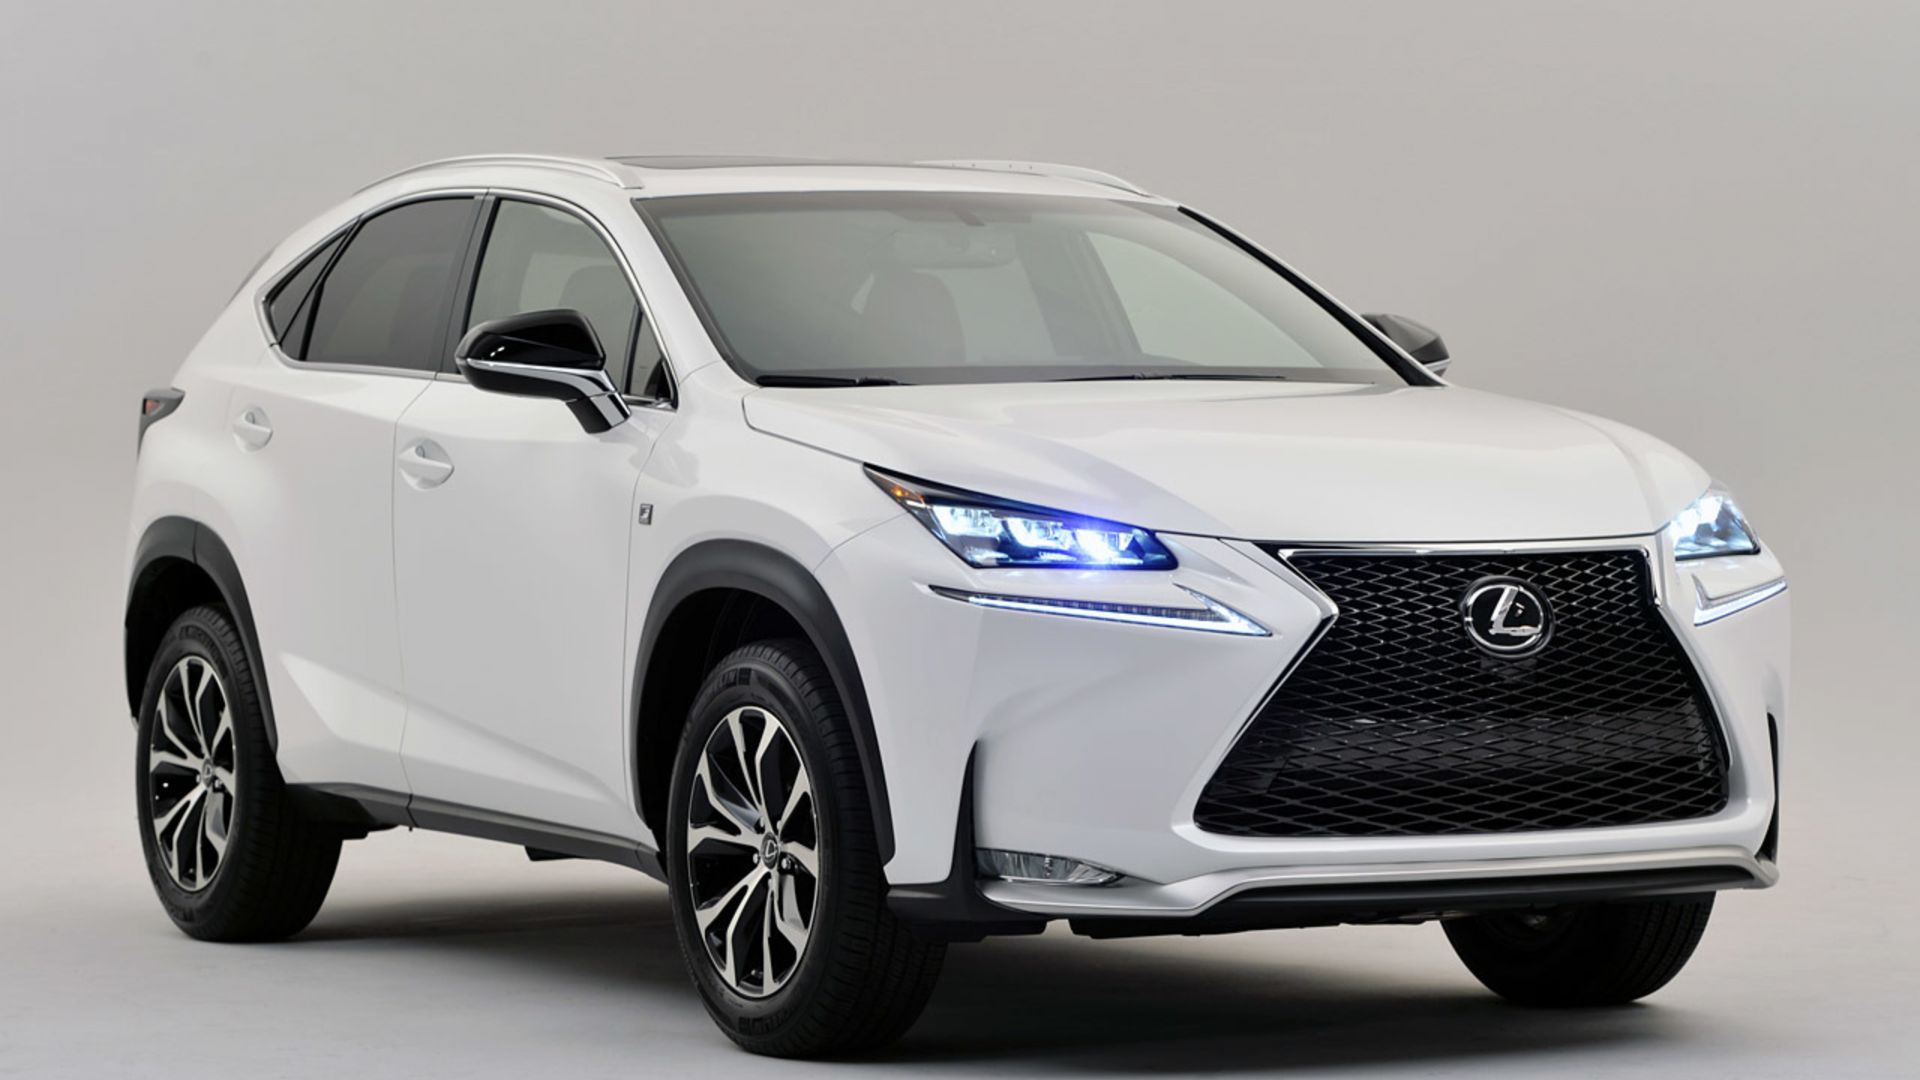 Lexus Nx 300h Sport Wallpaper Lexus Nx 300h 2018 Cars 5k Cars And Bikes 15825